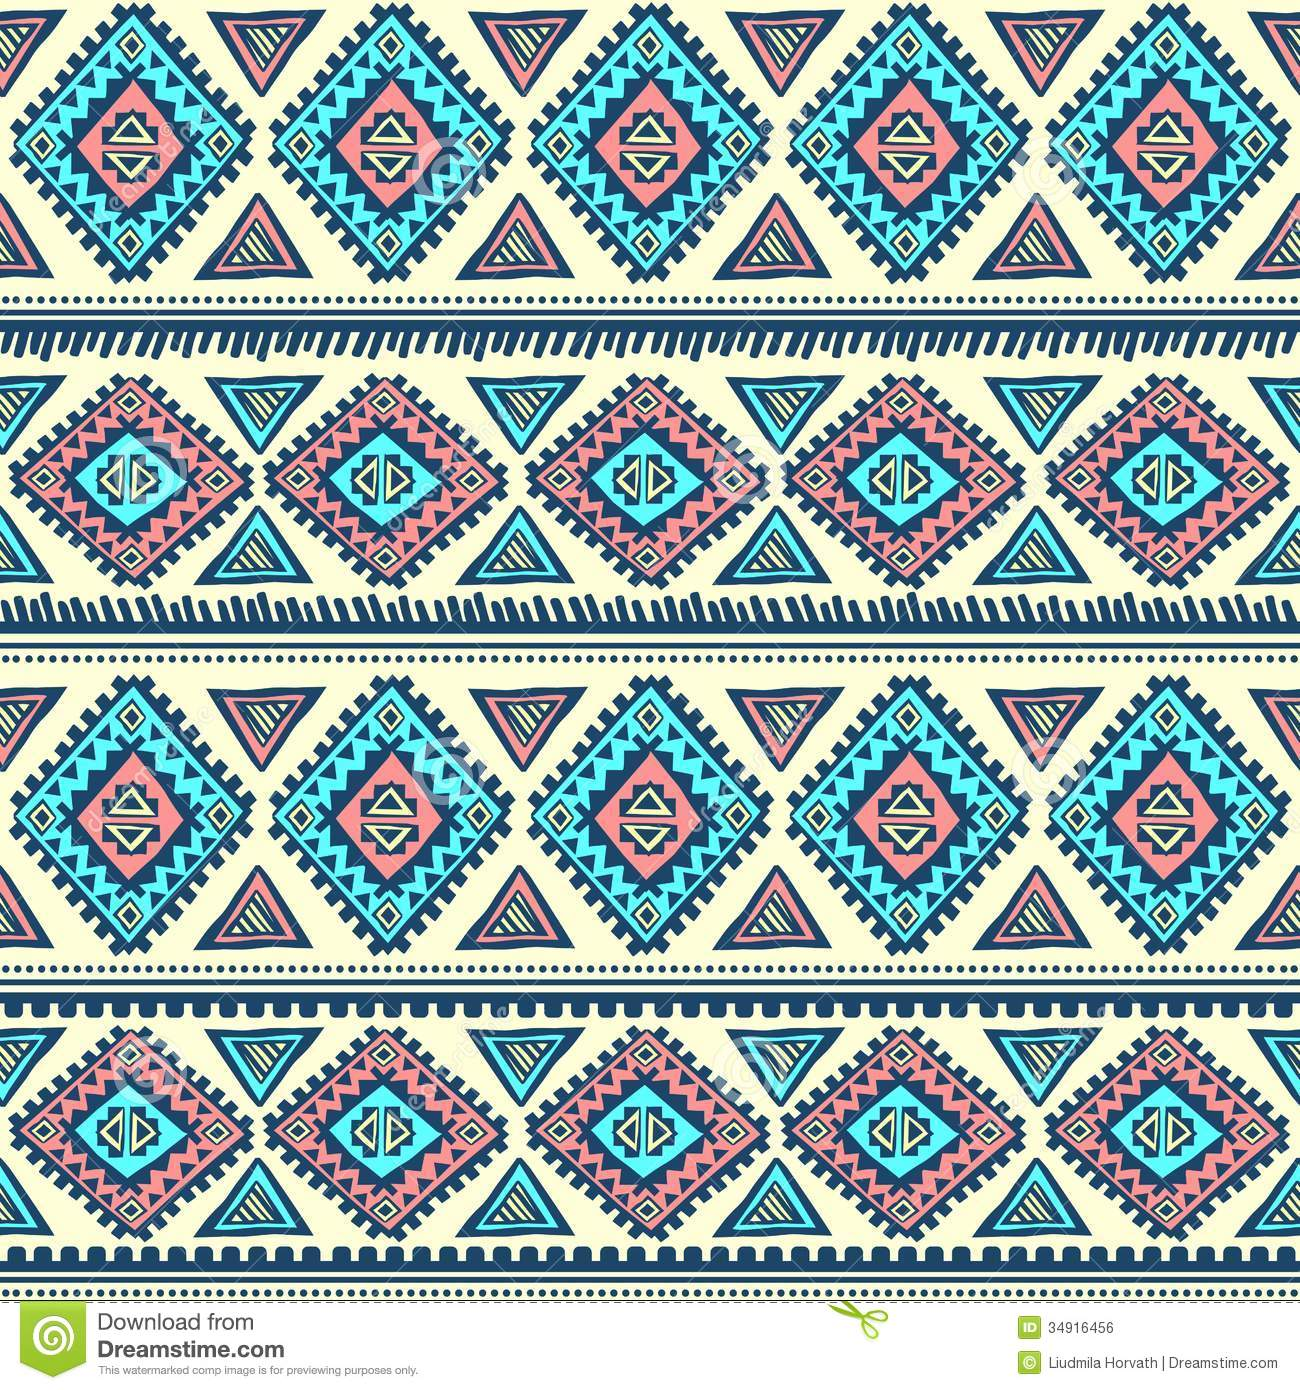 Tribal vintage ethnic pattern seamless illustration for your business.